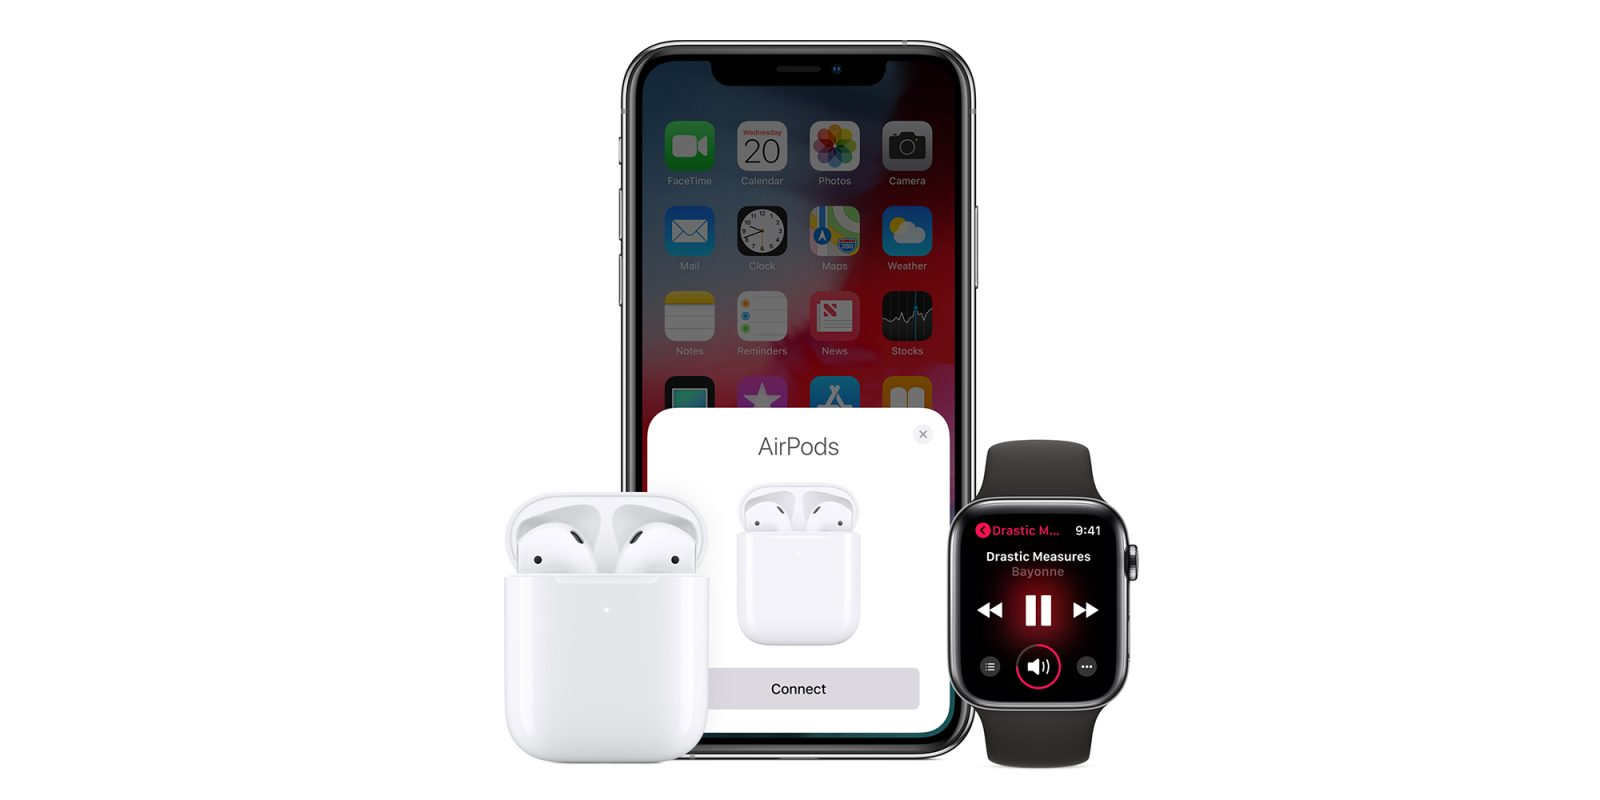 hot sale online ac282 11d15 Latest Apple AirPods on sale from $140, w/ wireless charging case ...